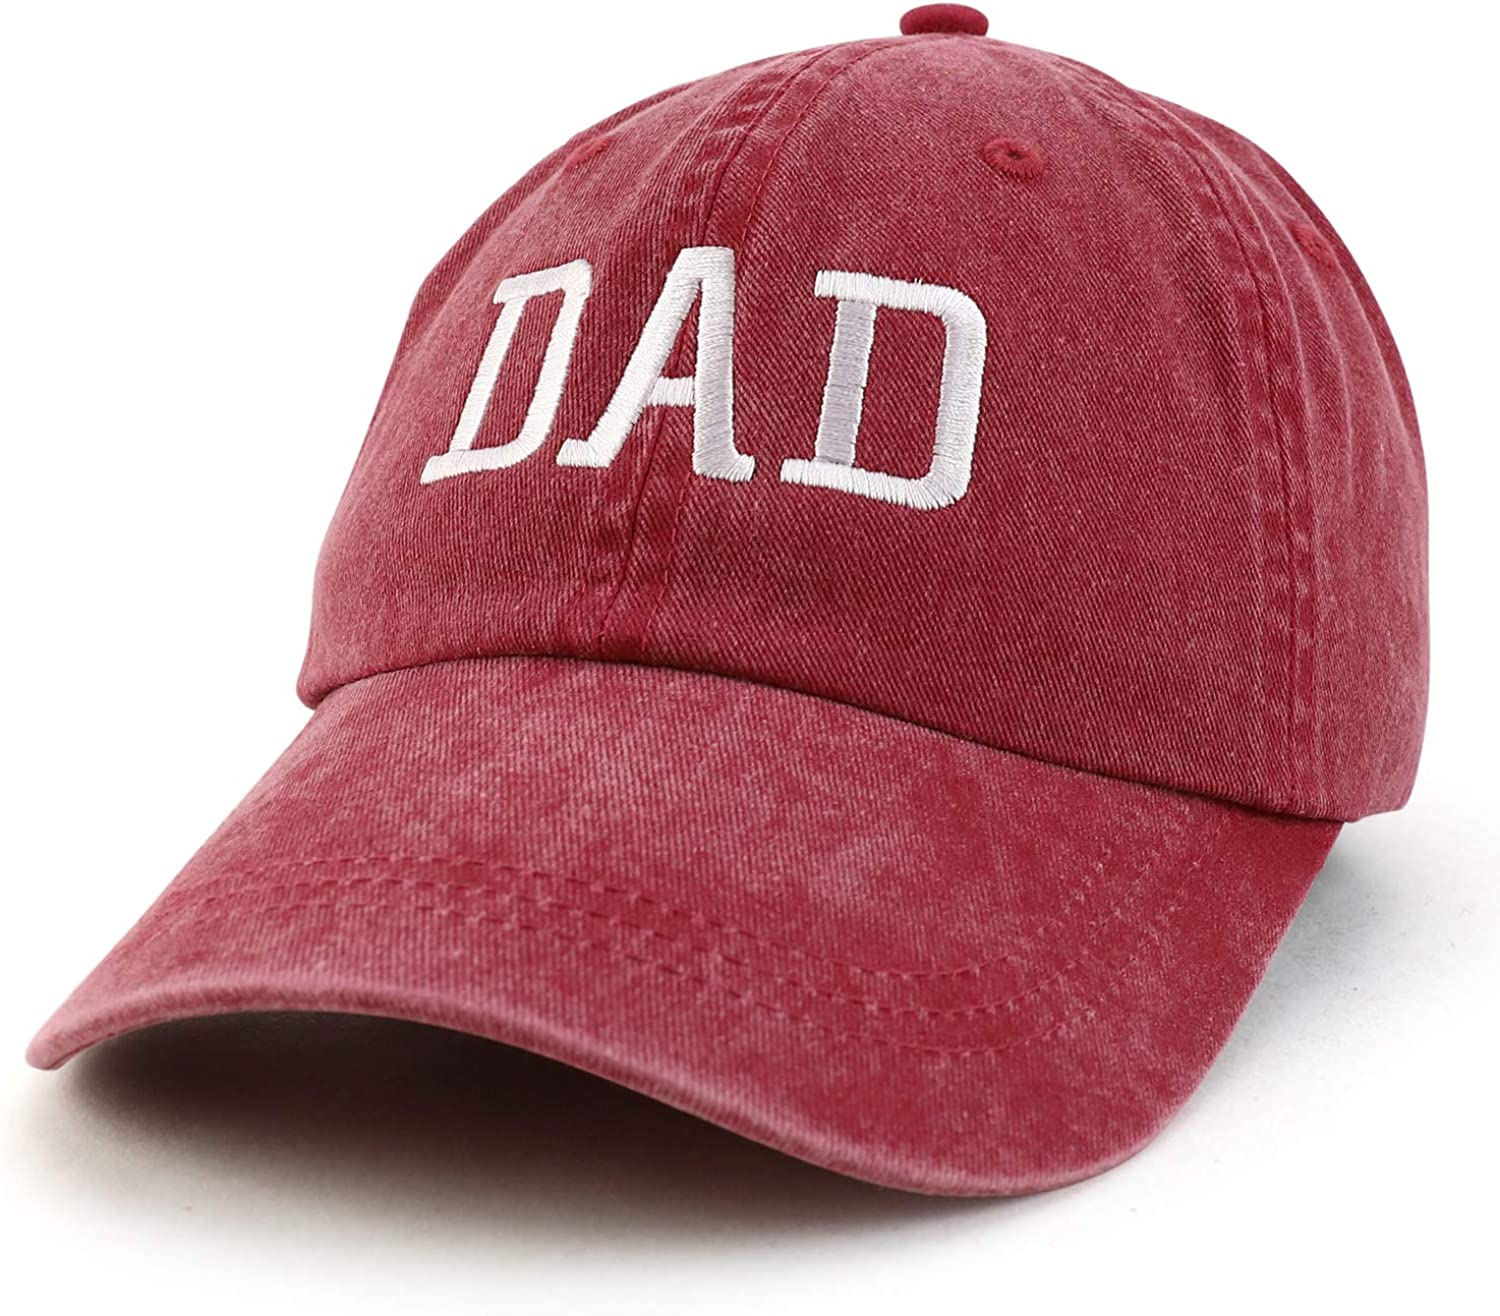 Trendy Apparel Shop Dad Cheap mail order shopping Luxury goods Embroidered Profile Pigment Cot Dyed Low